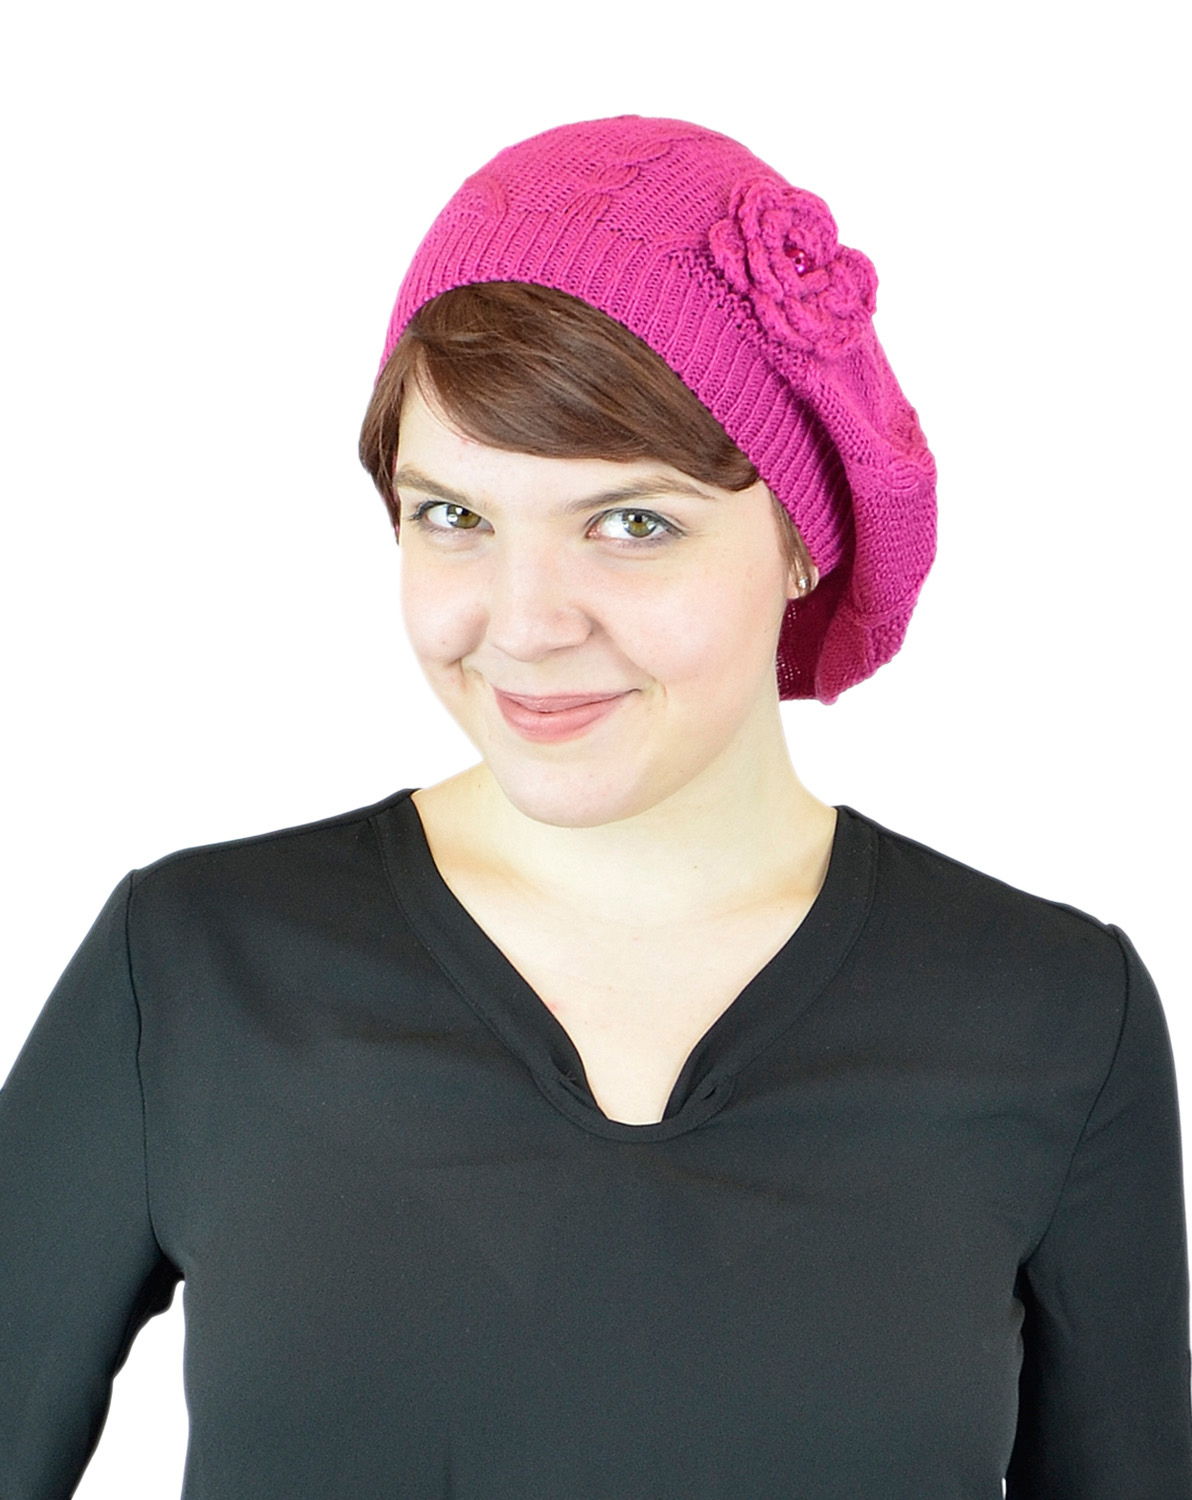 Belle Donne - Women's Mesh Crocheted Accented Stretch Beret Hat- HotPink 4082